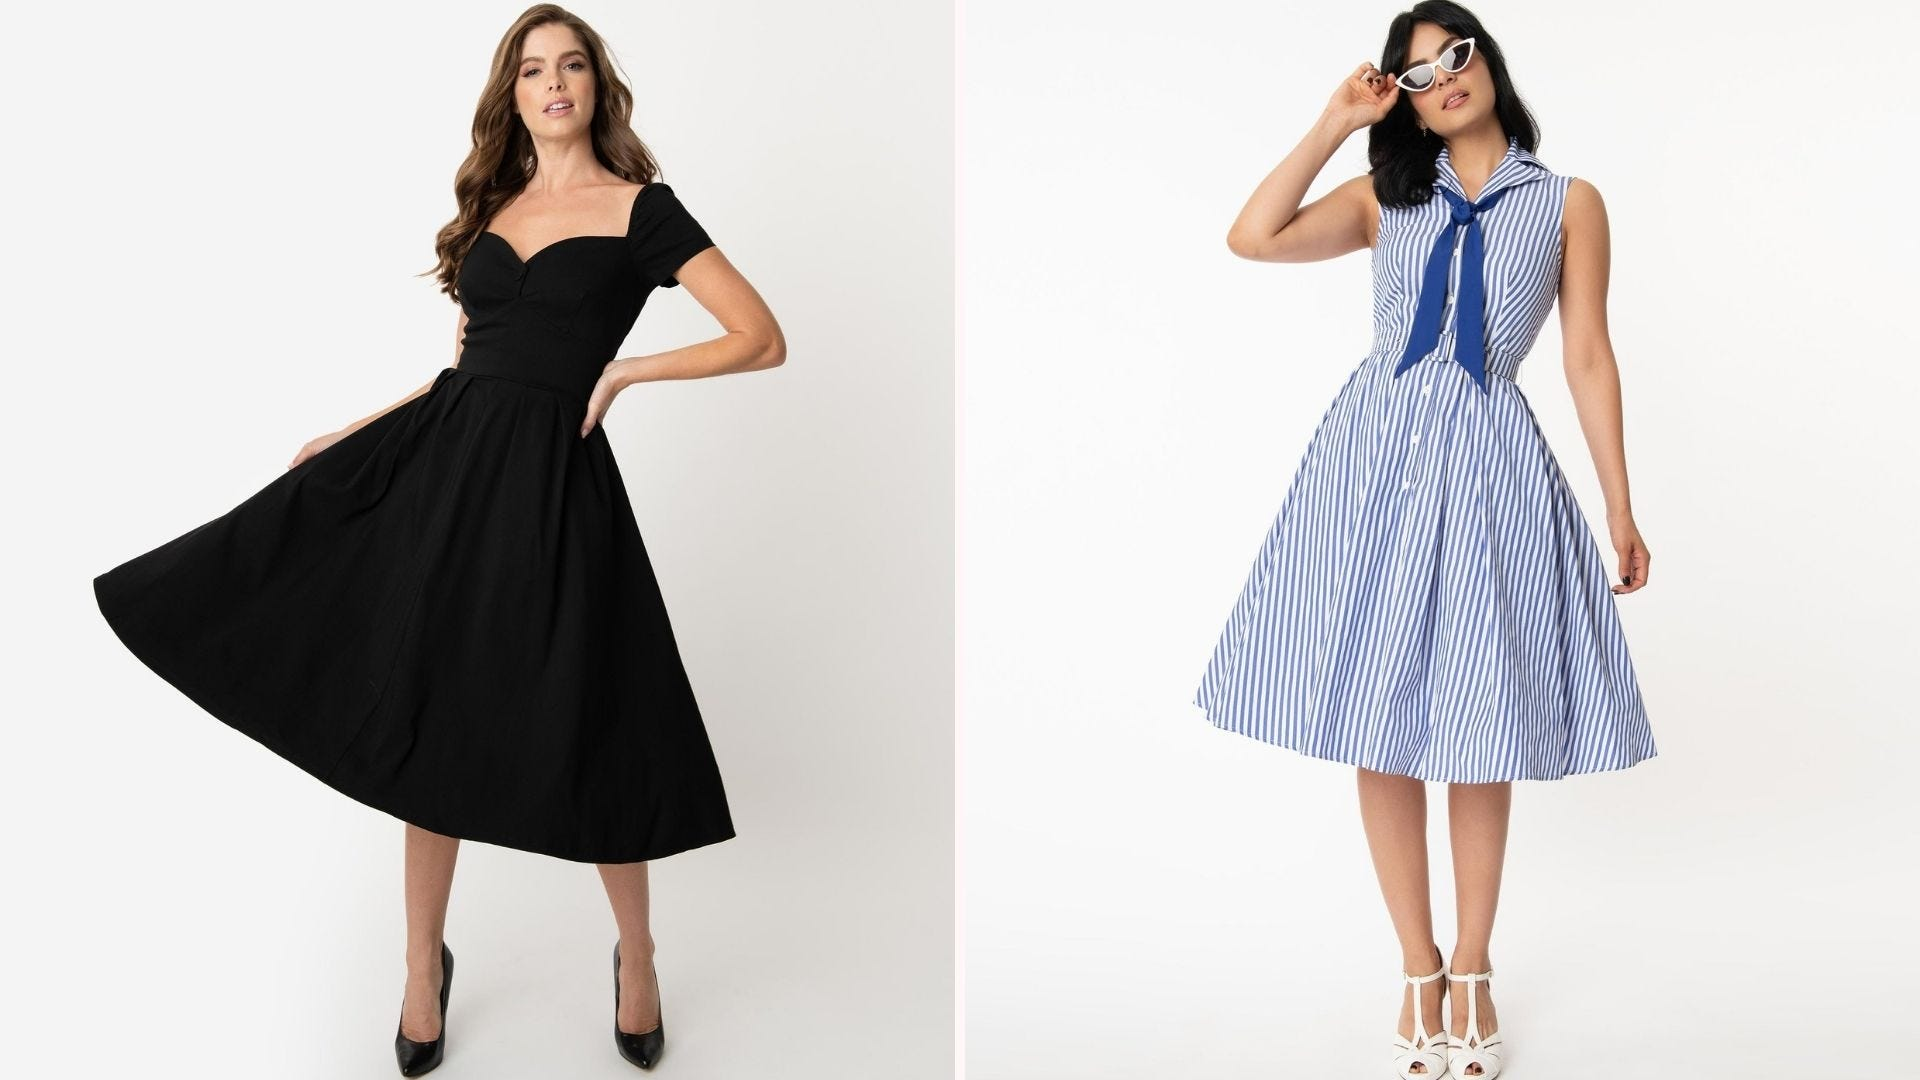 A woman in a swing-skirt black dress; a woman in a white and blue striped sleeveless dress